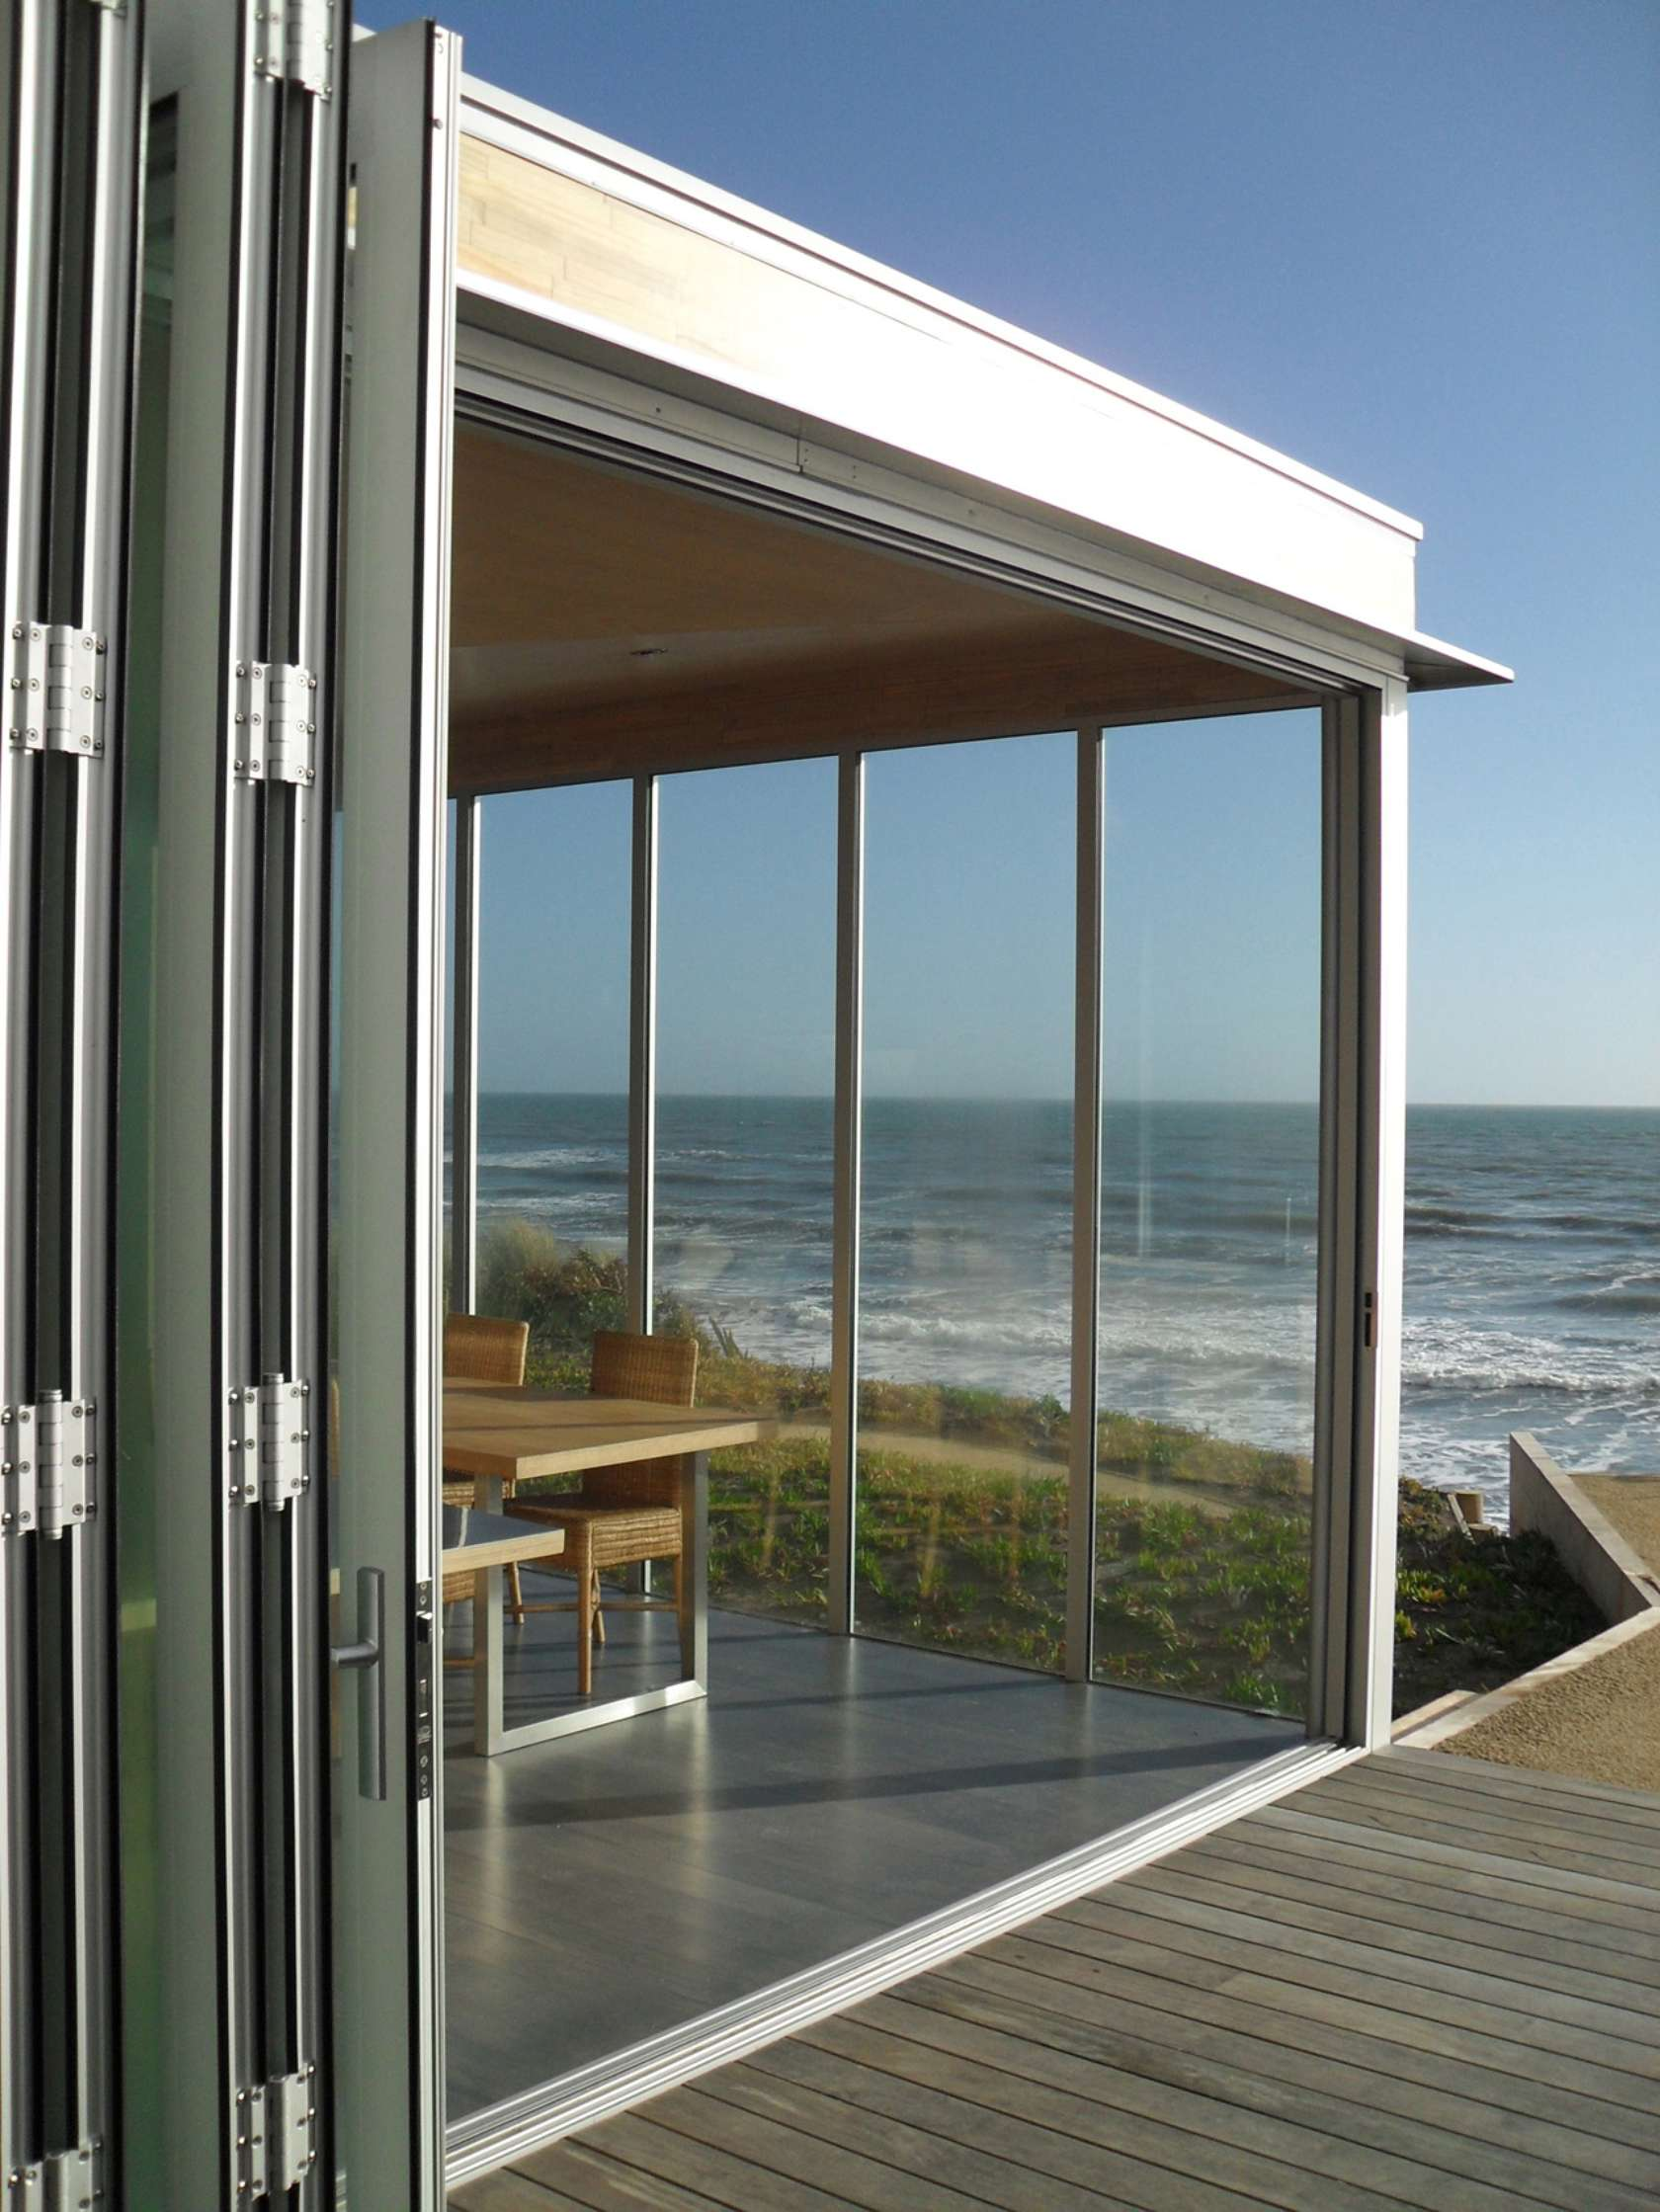 Kapiti Beach House by Geoff Fletcher Architects (via Lunchbox Architect)